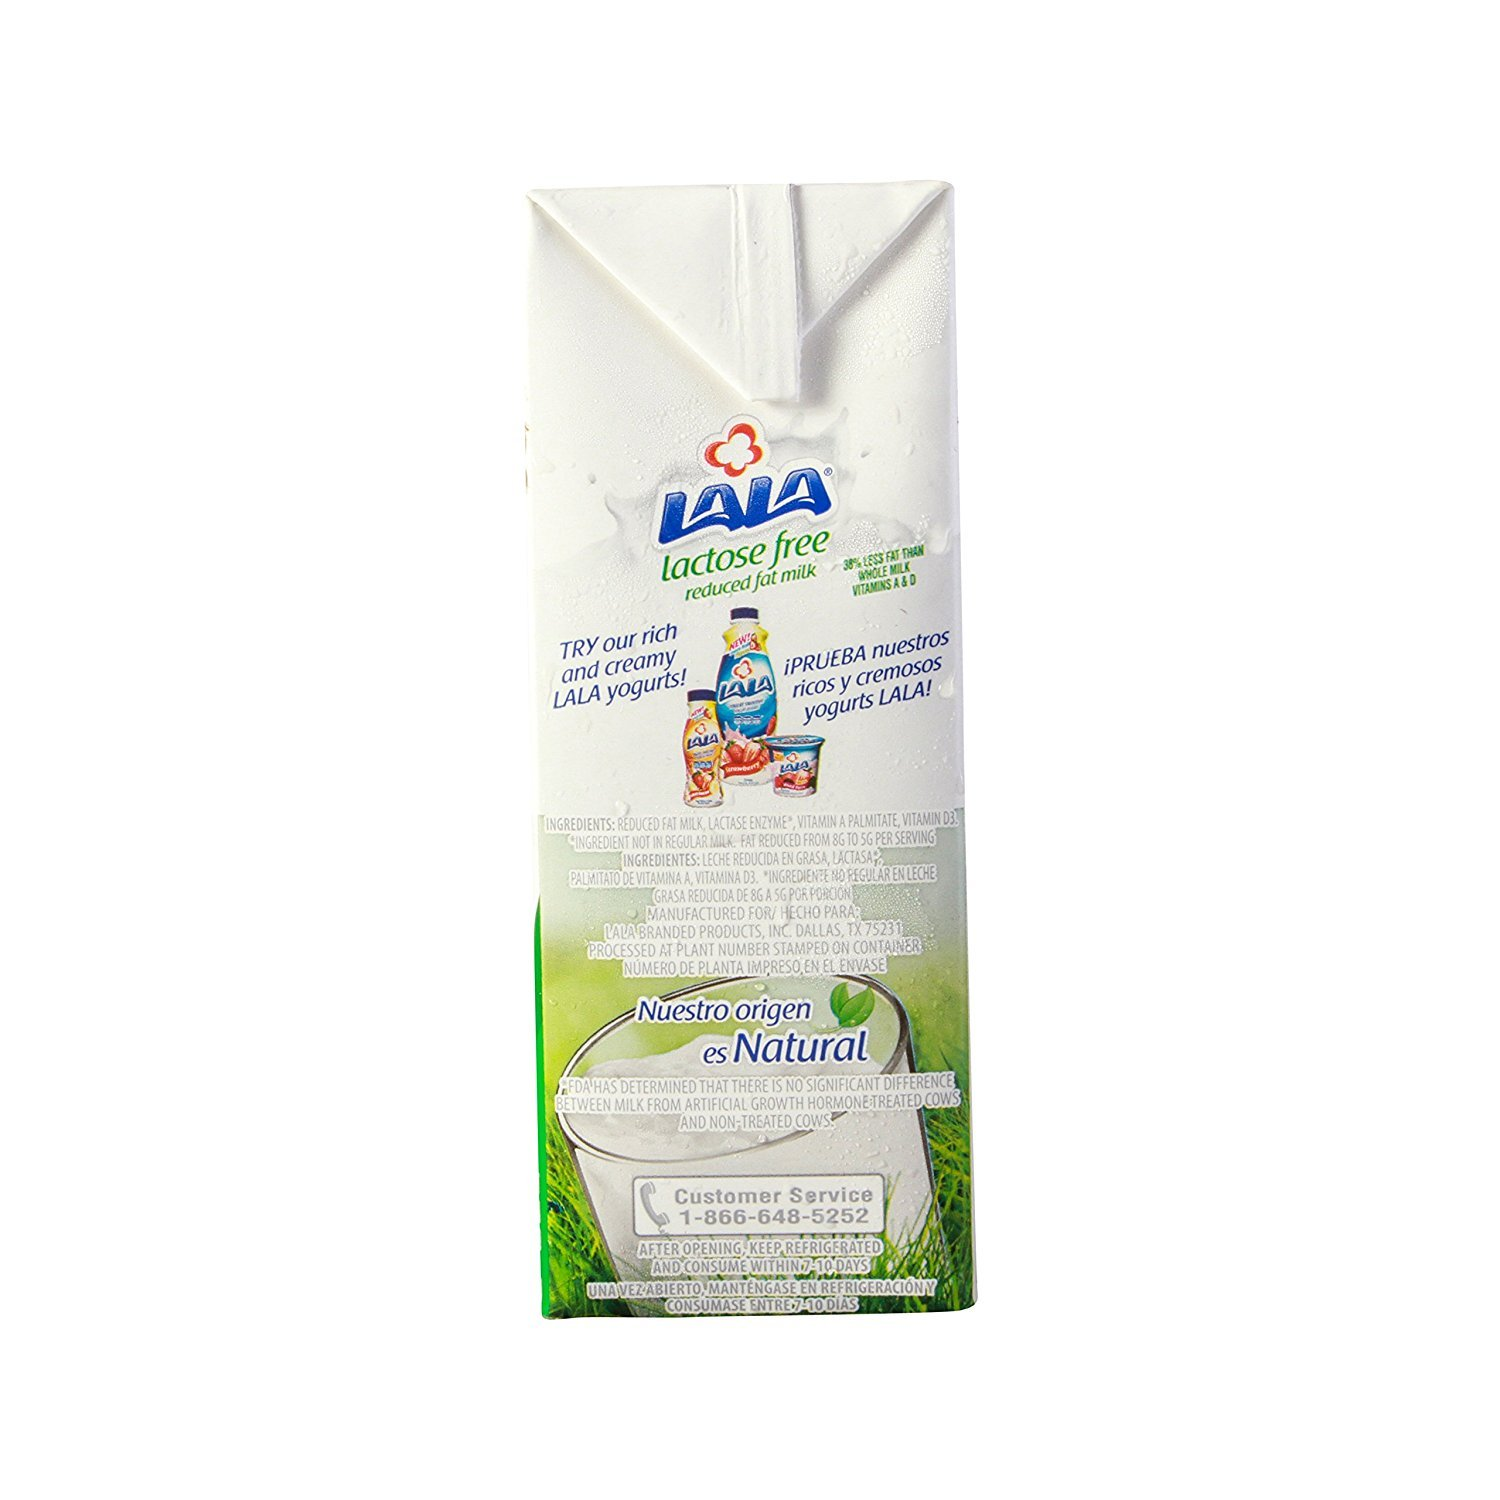 LALA Lactose Free Reduced Fat Milk - 1qt (946 mL): Amazon.com: Grocery & Gourmet Food